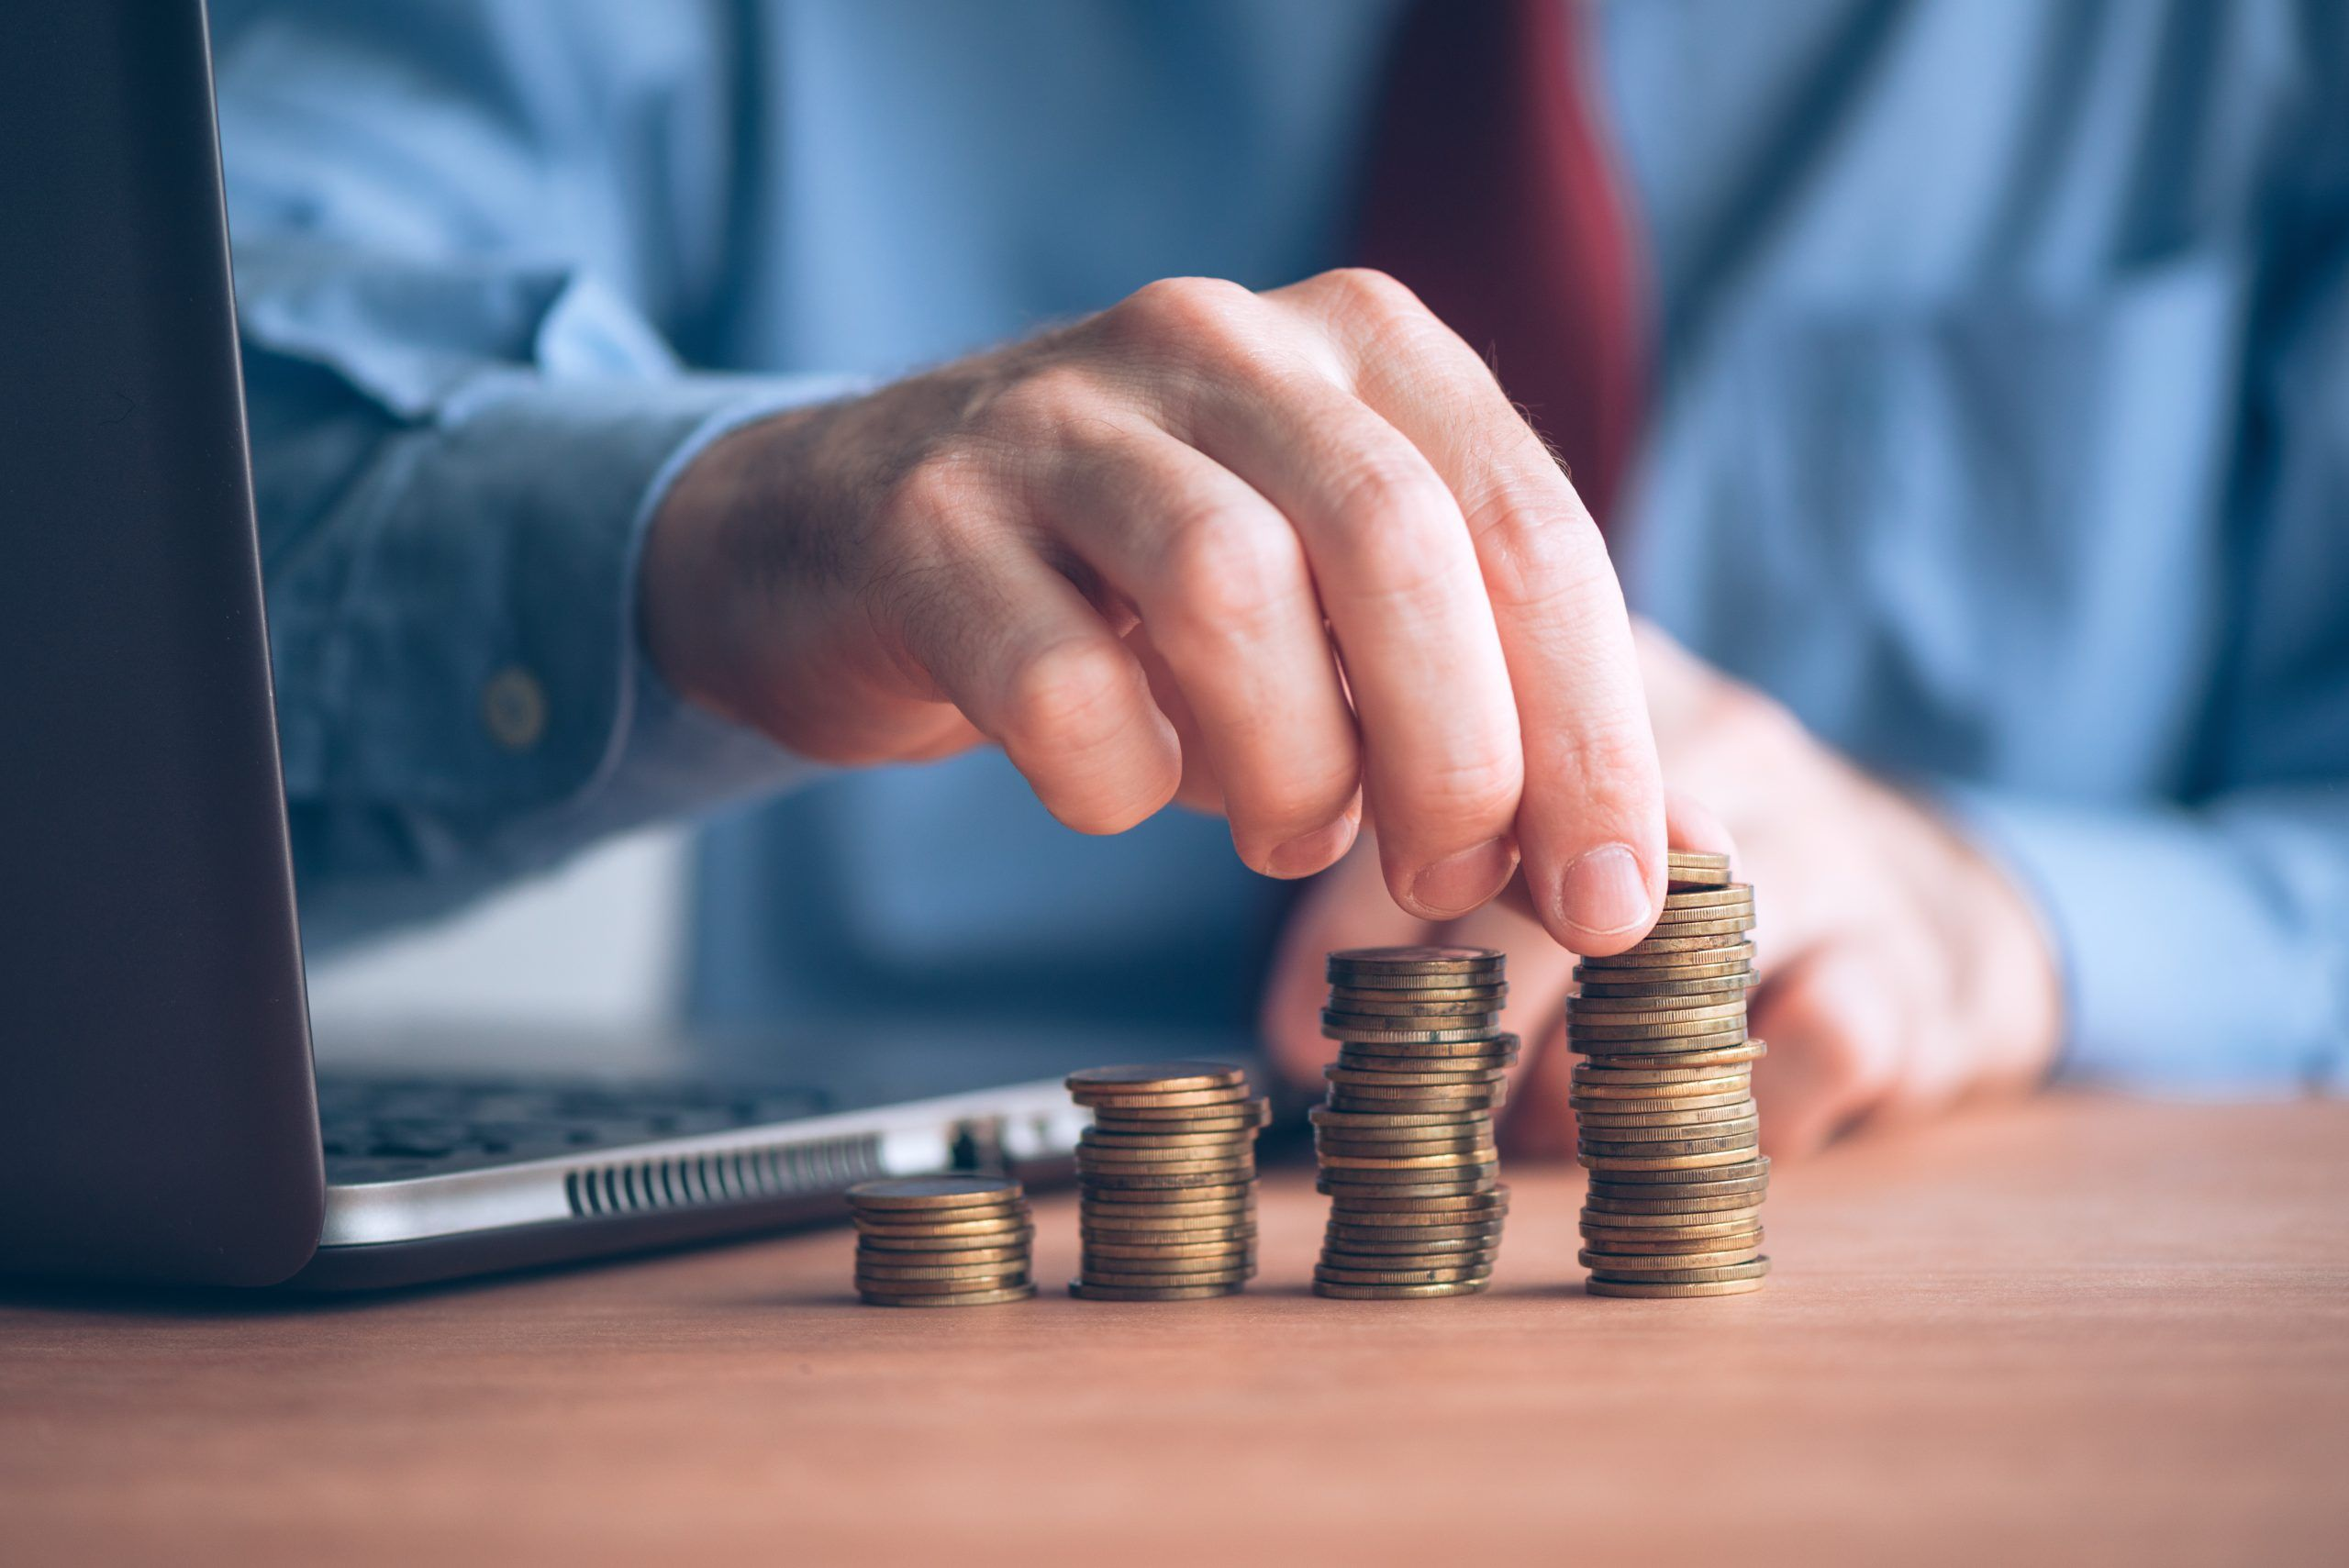 Building savings and increase emergency funds, businessman with stacked money coins on office desk